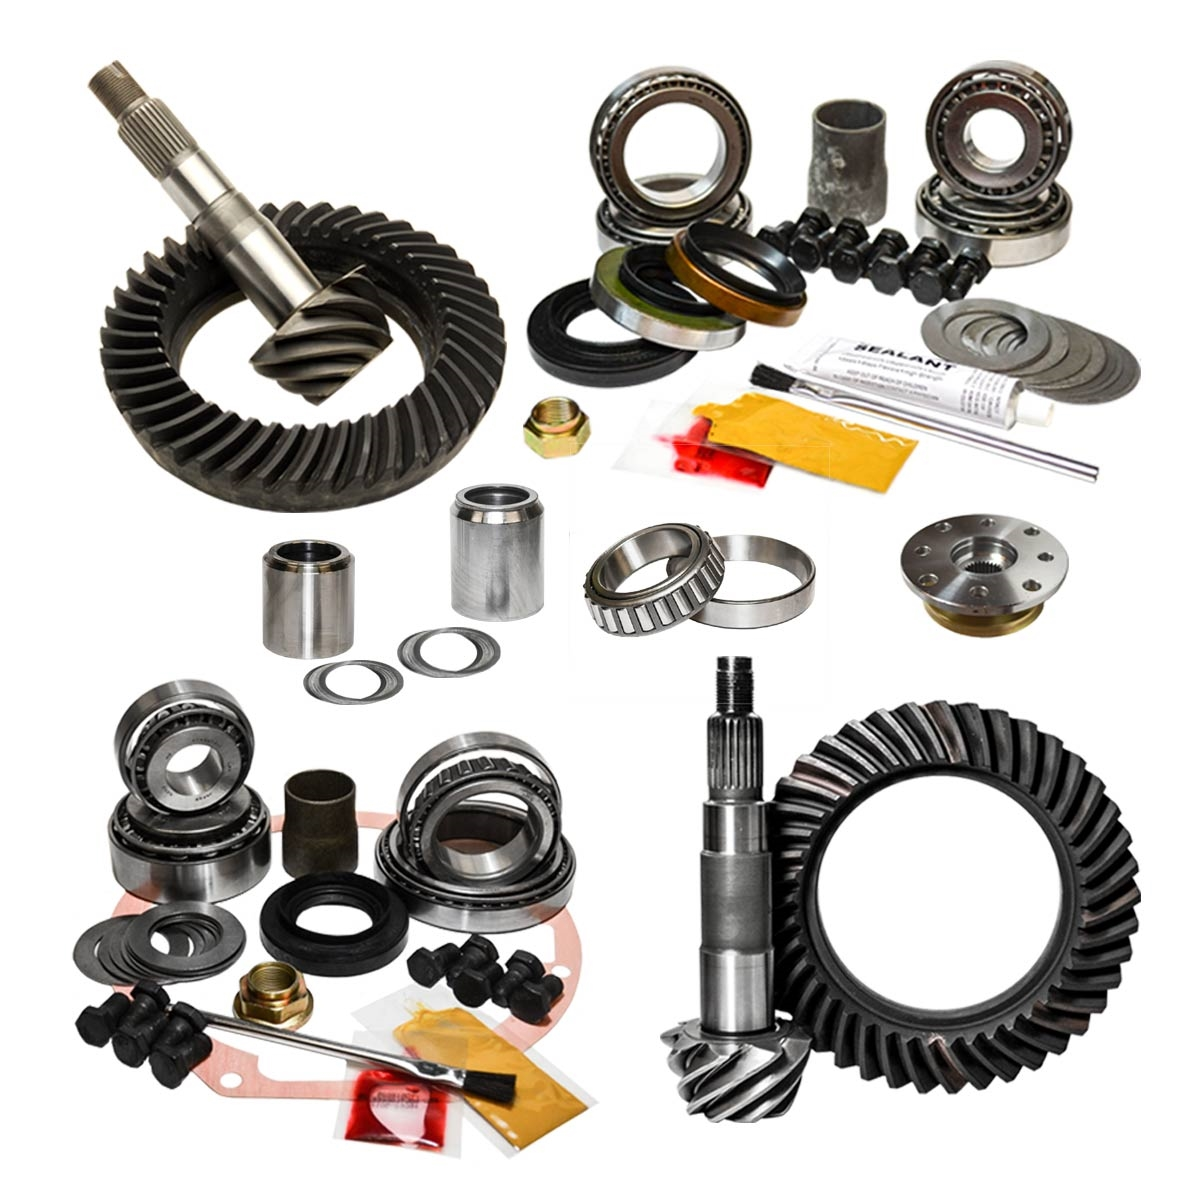 95 1/2-04 Toyota Tacoma 96-02 Toyota 4Runner 4.88 Ratio Front/RearGear Package Kit Nitro Gear and Axle